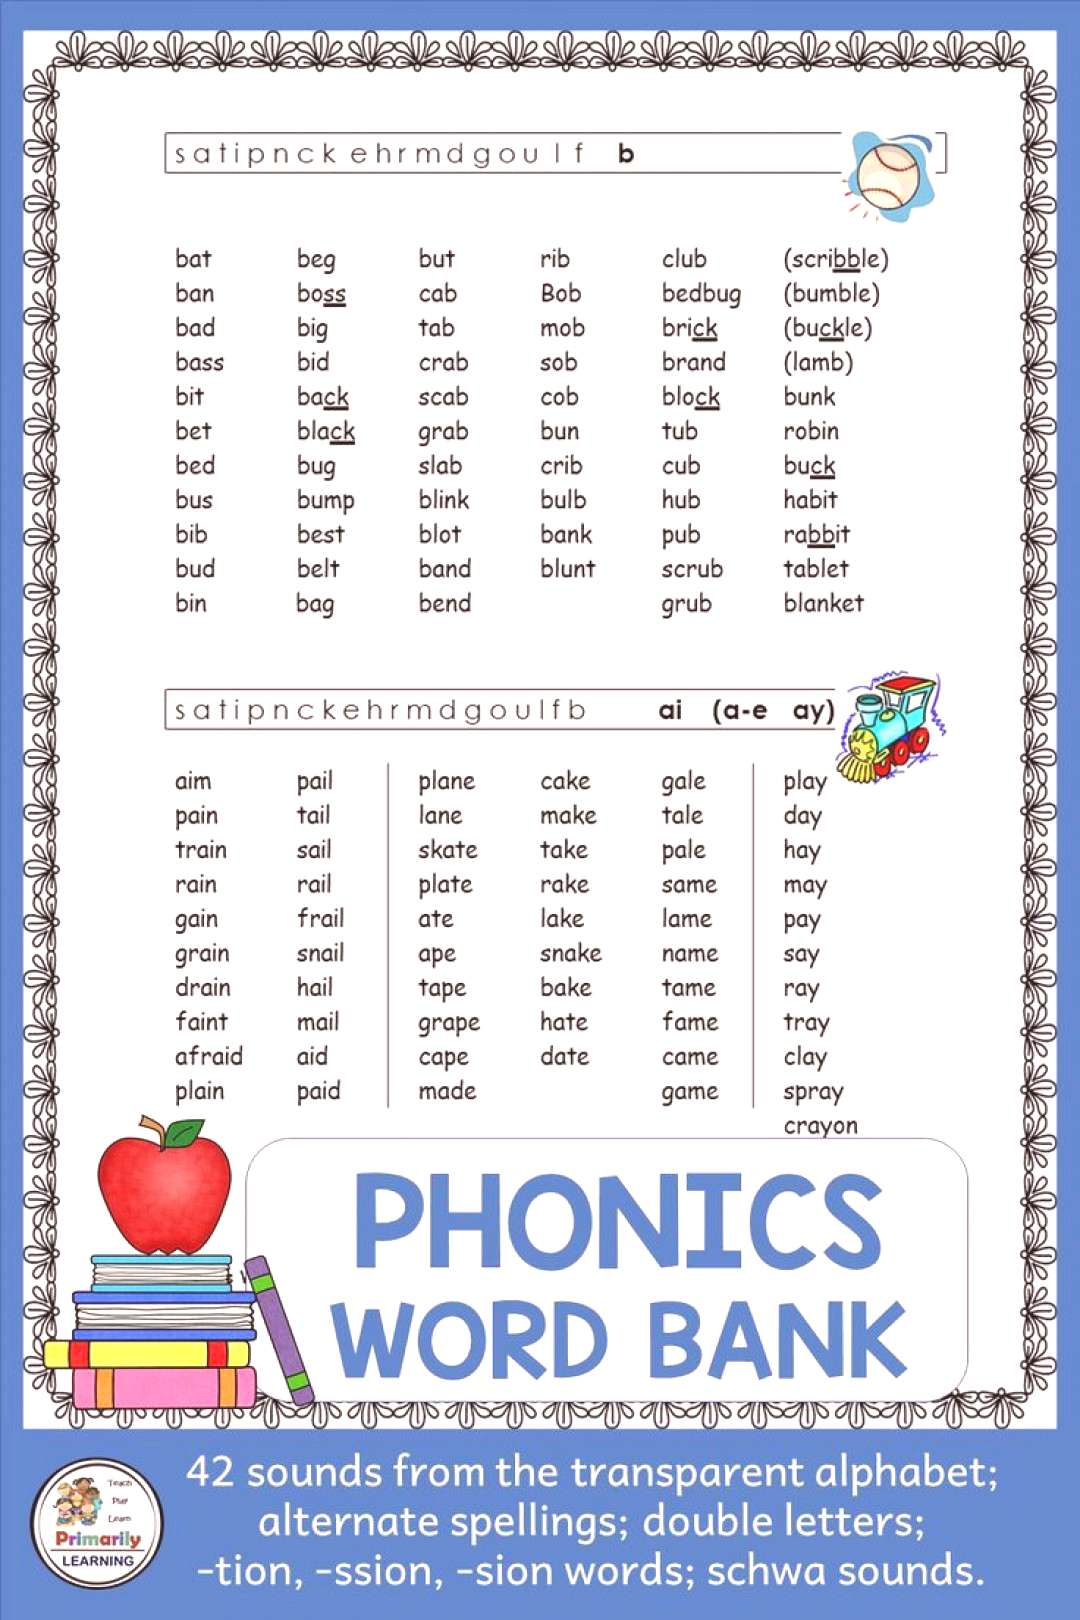 Word Bank supports Jolly Phonics Sounds Are you looking for PHONICS WORD BANKS that follow the same